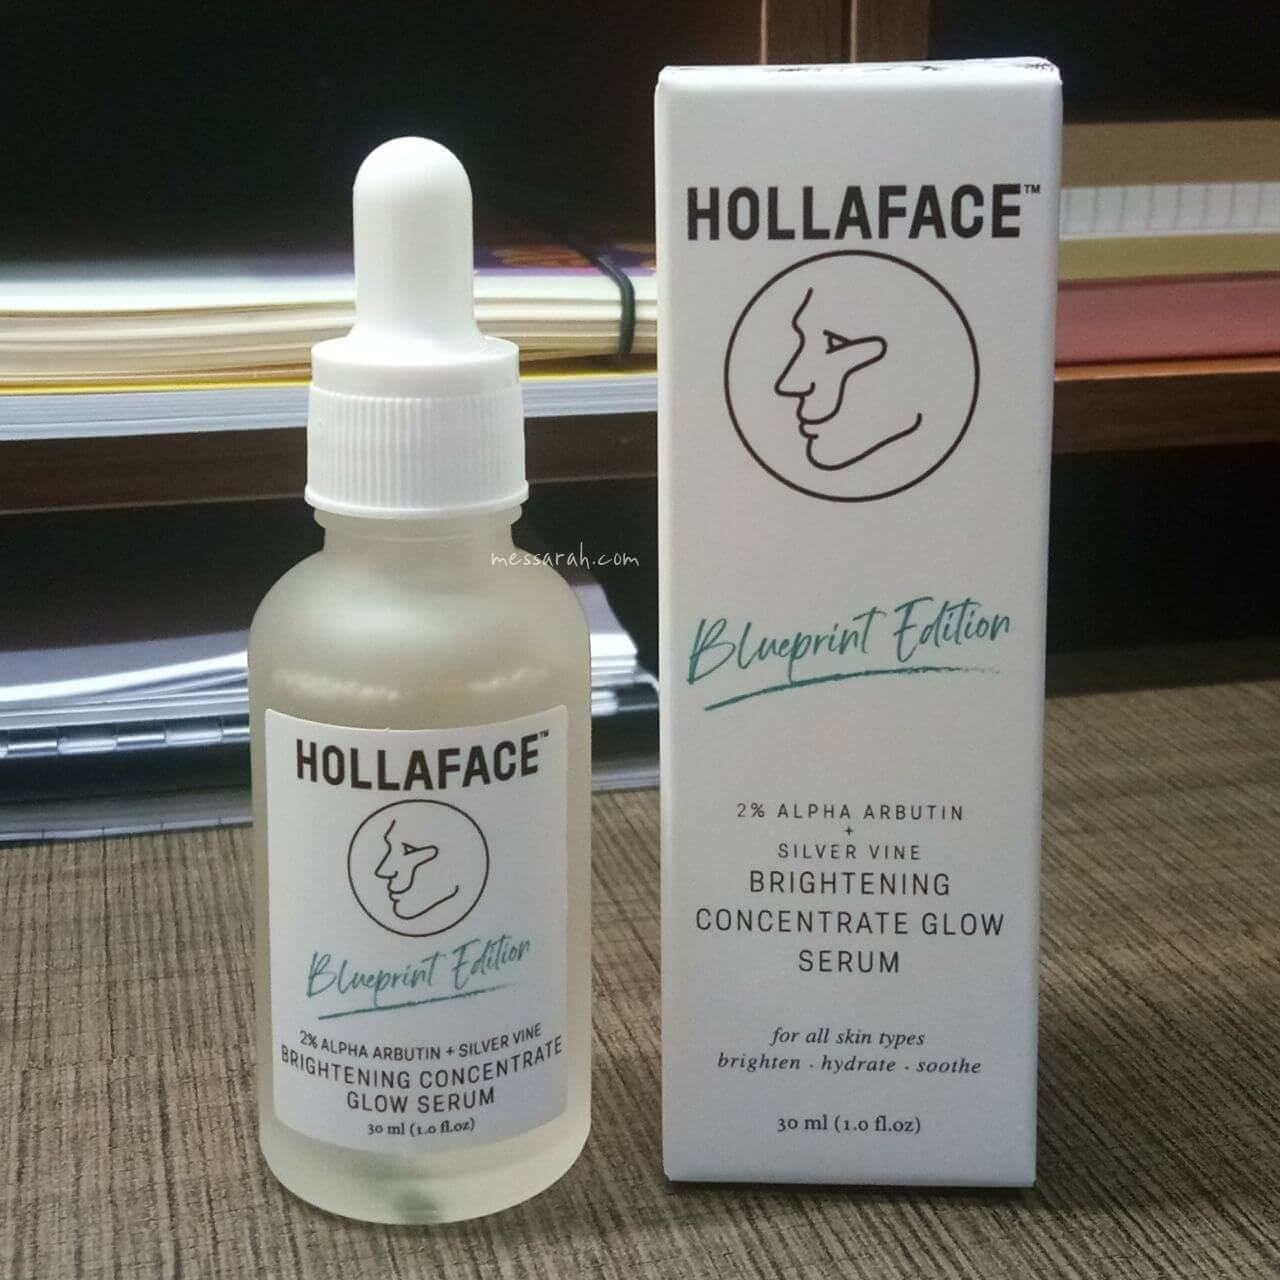 Hollaface Brightening Concentrate Glow Serum (2% Alpha Arbutin + Silver Vine) Review